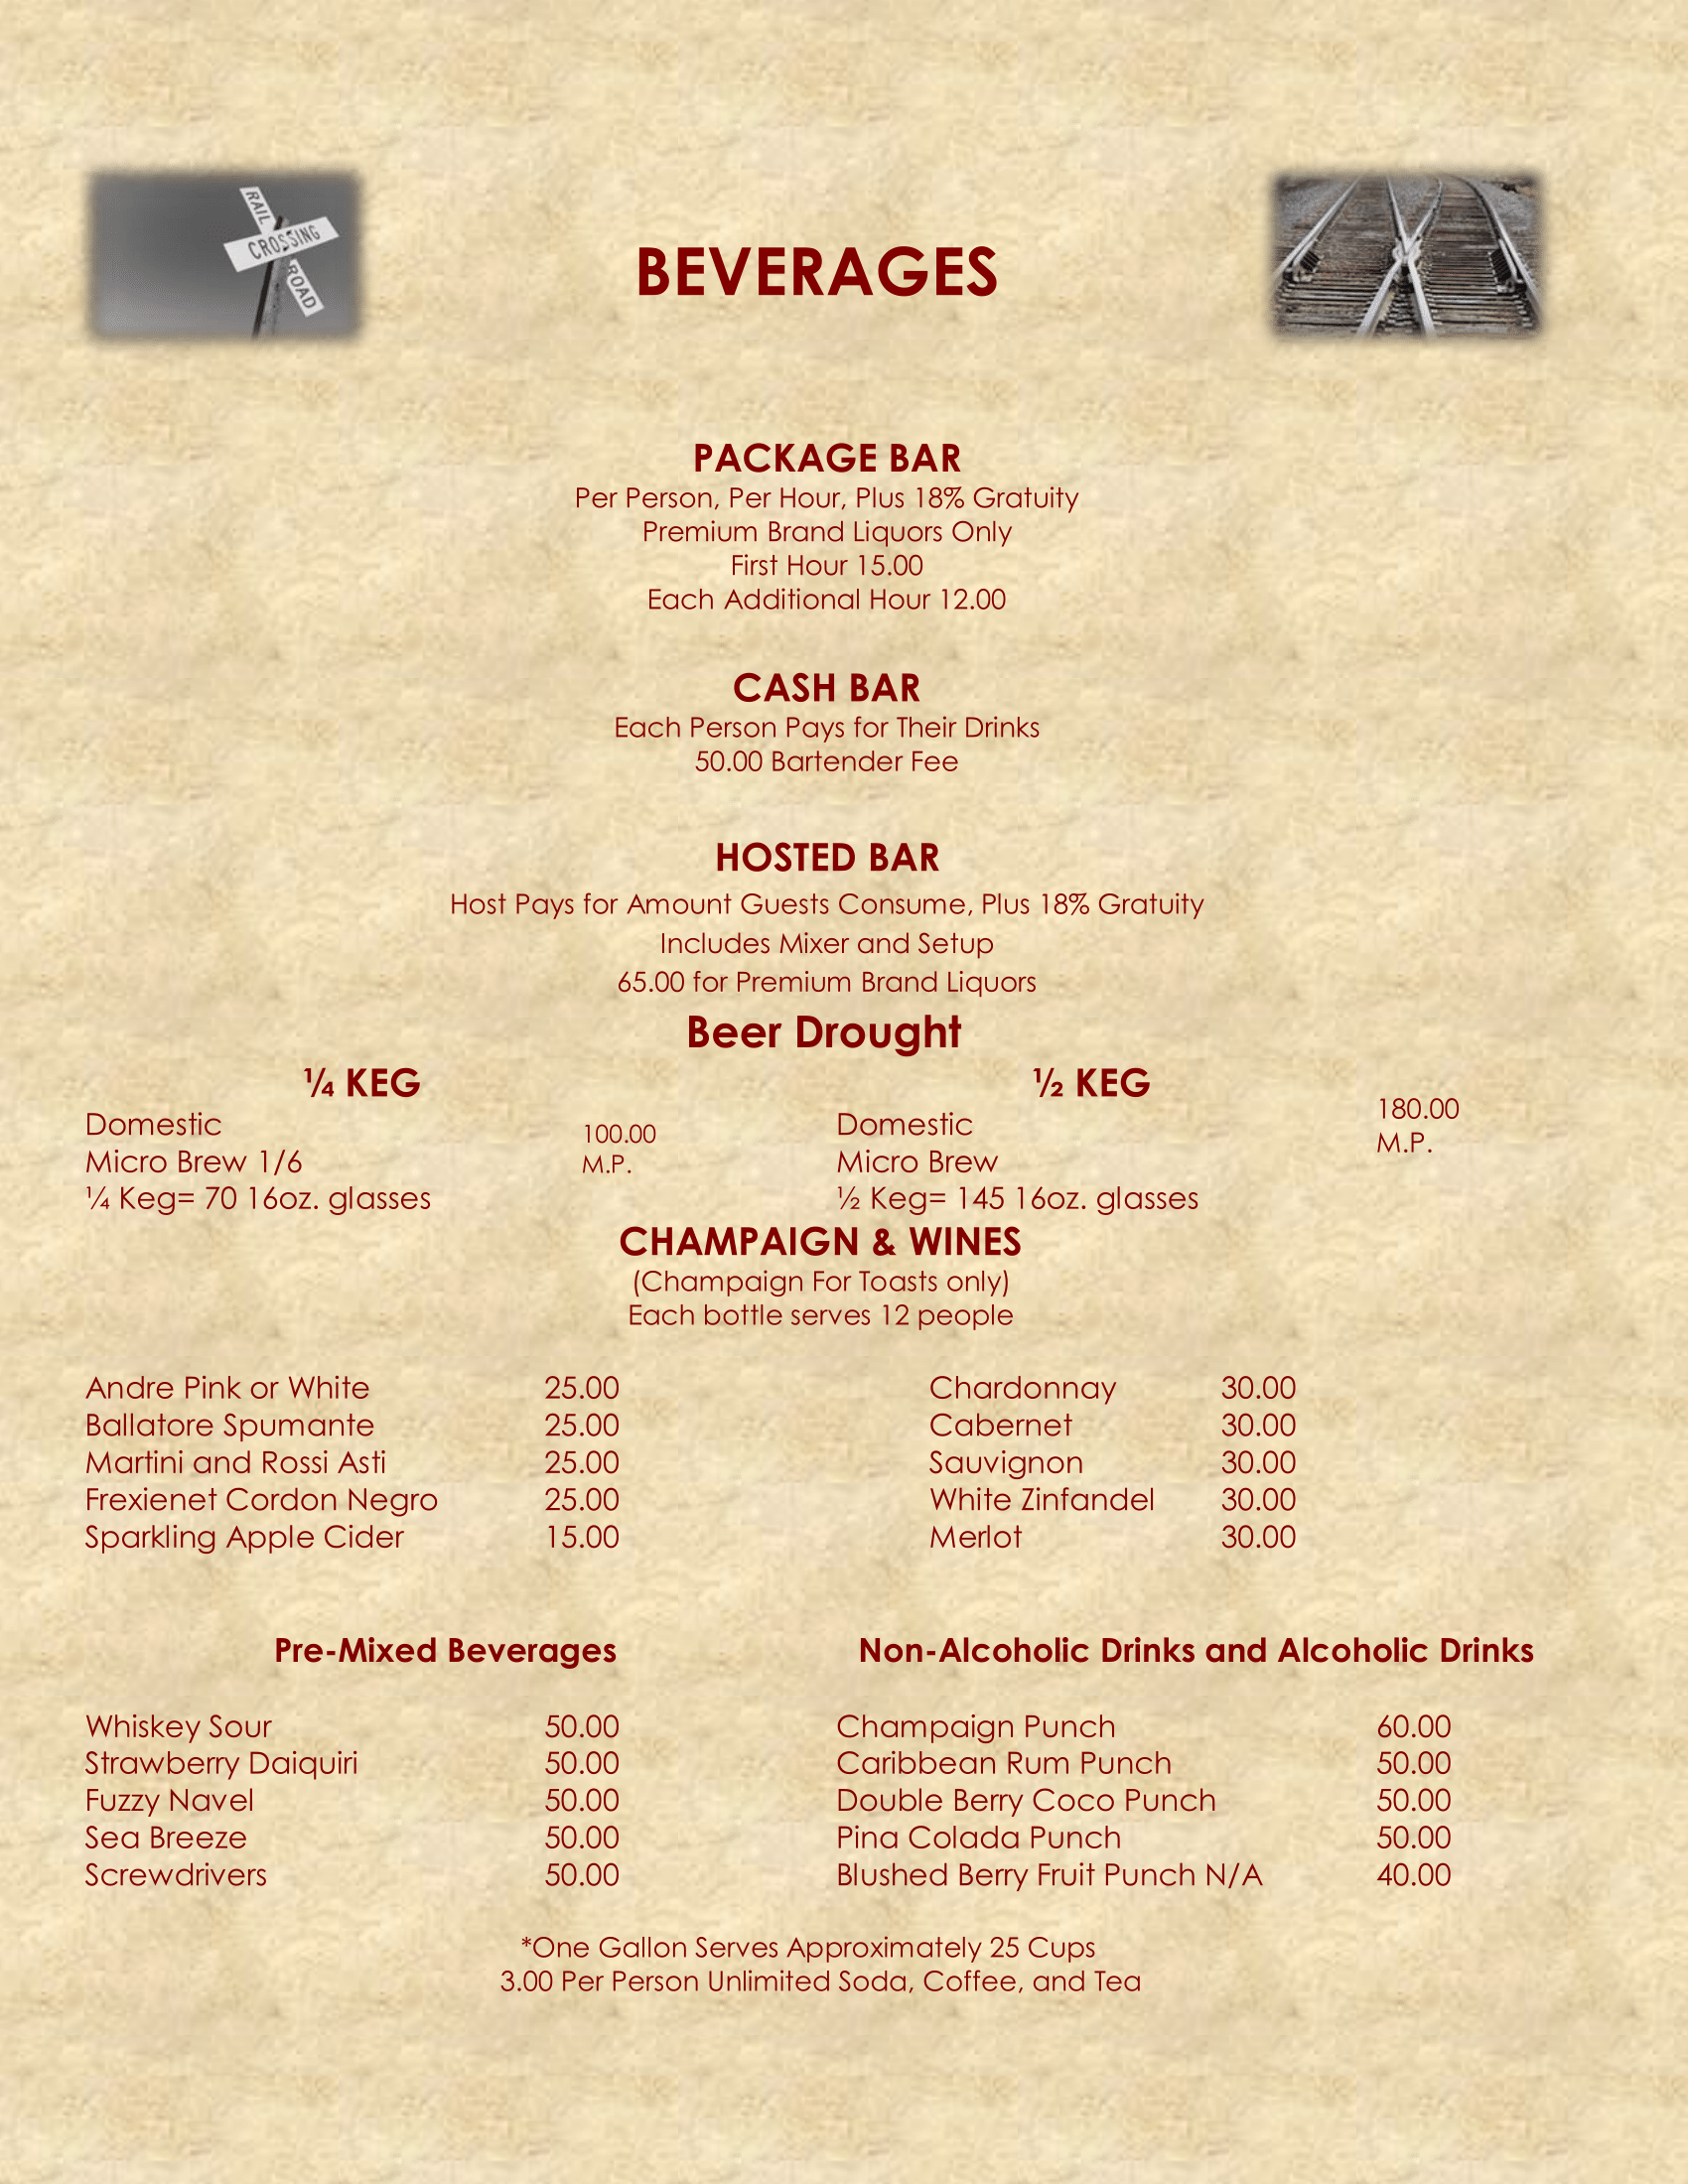 BEVERAGES PACKAGE BAR Per Person, Per Hour, Plus 18% Gratuity Premium Brand Liquors Only First Hour 15.00 Each Additional Hour 12.00 CASH BAR Each Person Pays for Their Drinks 50.00 Bartender Fee  HOSTED BAR Host Pays for Amount Guests Consume, Plus 18% Gratuity Includes Mixer and Setup 65.00 for Premium Brand Liquors  Beer Drought  ¼ KEG Domestic Micro Brew 1/6 ¼ Keg= 70 16oz. glasses 100.00 M.P.  ½ KEG Domestic Micro Brew ½ Keg= 145 16oz. glasses  180.00 $ M.P. CHAMPAIGN & WINES (Champaign For Toasts only) Each bottle serves 12 people Andre Pink or White Ballatore Spumante Martini and Rossi Asti Frexienet Cordon Negro Sparkling Apple Cider 25.00 25.00 25.00 25.00 15.00 Chardonnay Cabernet Sauvignon White Zinfandel Merlot 30.00 30.00 30.00 30.00 30.00 Pre-Mixed Beverages Non-Alcoholic Drinks and Alcoholic Drinks Whiskey Sour Strawberry Daiquiri Fuzzy Navel Sea Breeze Screwdrivers 50.00 50.00 50.00 50.00 50.00 Champaign Punch Caribbean Rum Punch Double Berry Coco Punch Pina Colada Punch Blushed Berry Fruit Punch N/A 60.00 50.00 50.00 50.00 40.00  *One Gallon Serves Approximately 25 Cups 3.00 Per Person Unlimited Soda, Coffee, and Tea